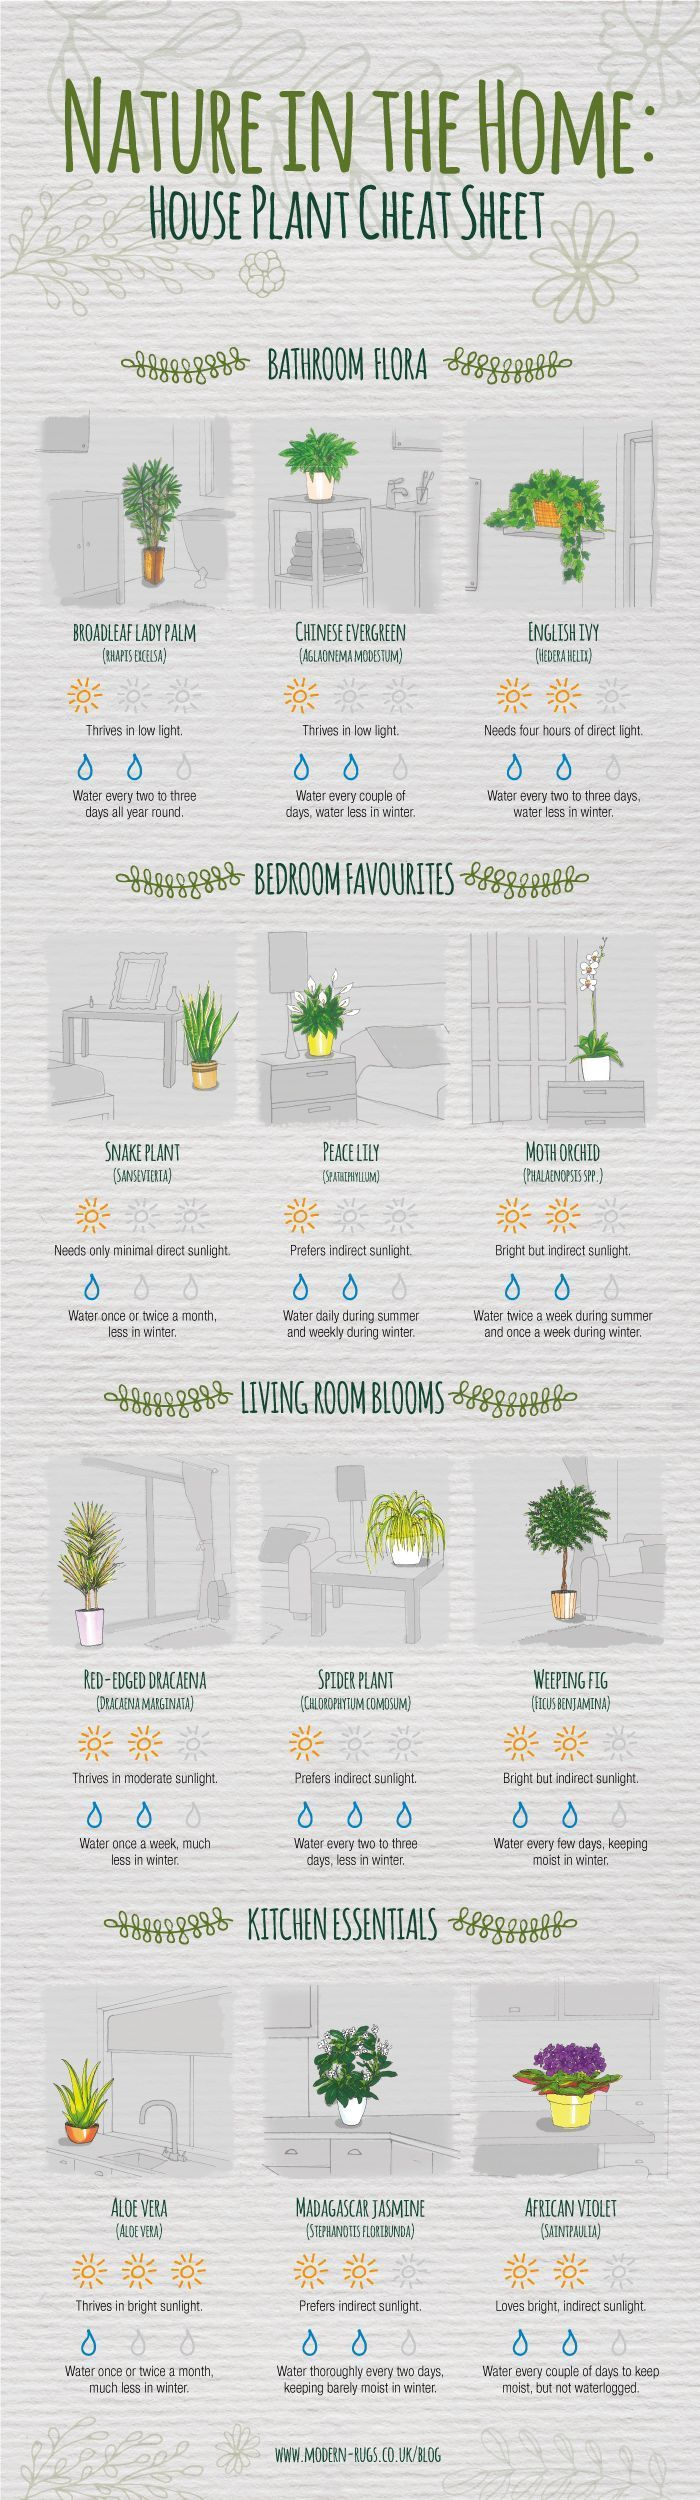 A Cheat Sheet That's Going to Save All of Your Houseplants Never question how much sunlight your spider plant needs again.Never question how much sunlight your spider plant needs again.